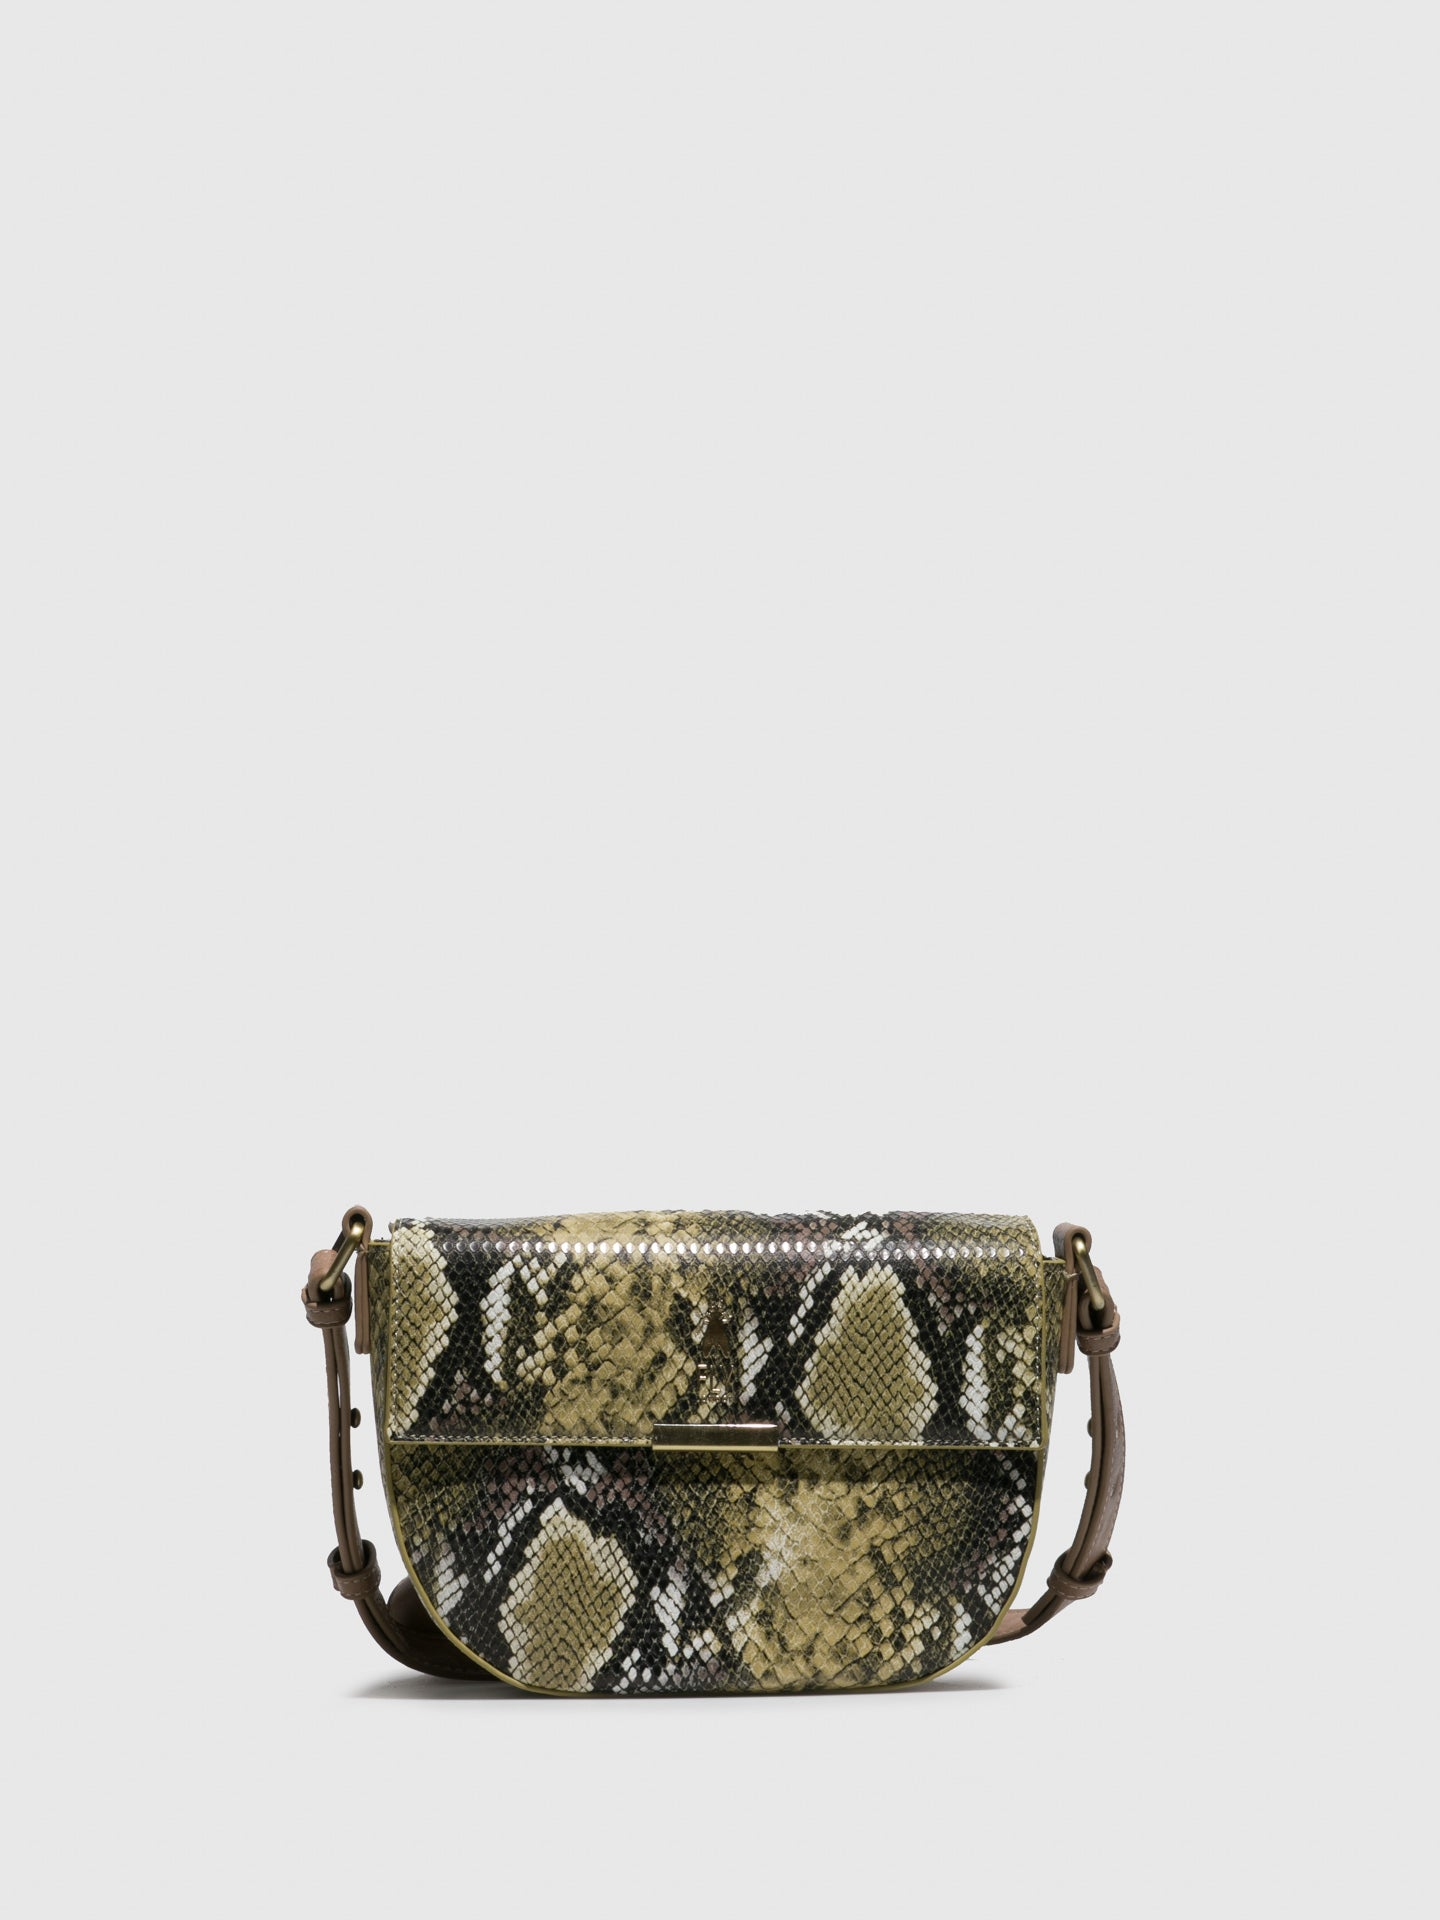 Fly London Shoulder Bags ALVO694FLY ROWLING/AUSTIN SNAKE BEIJE